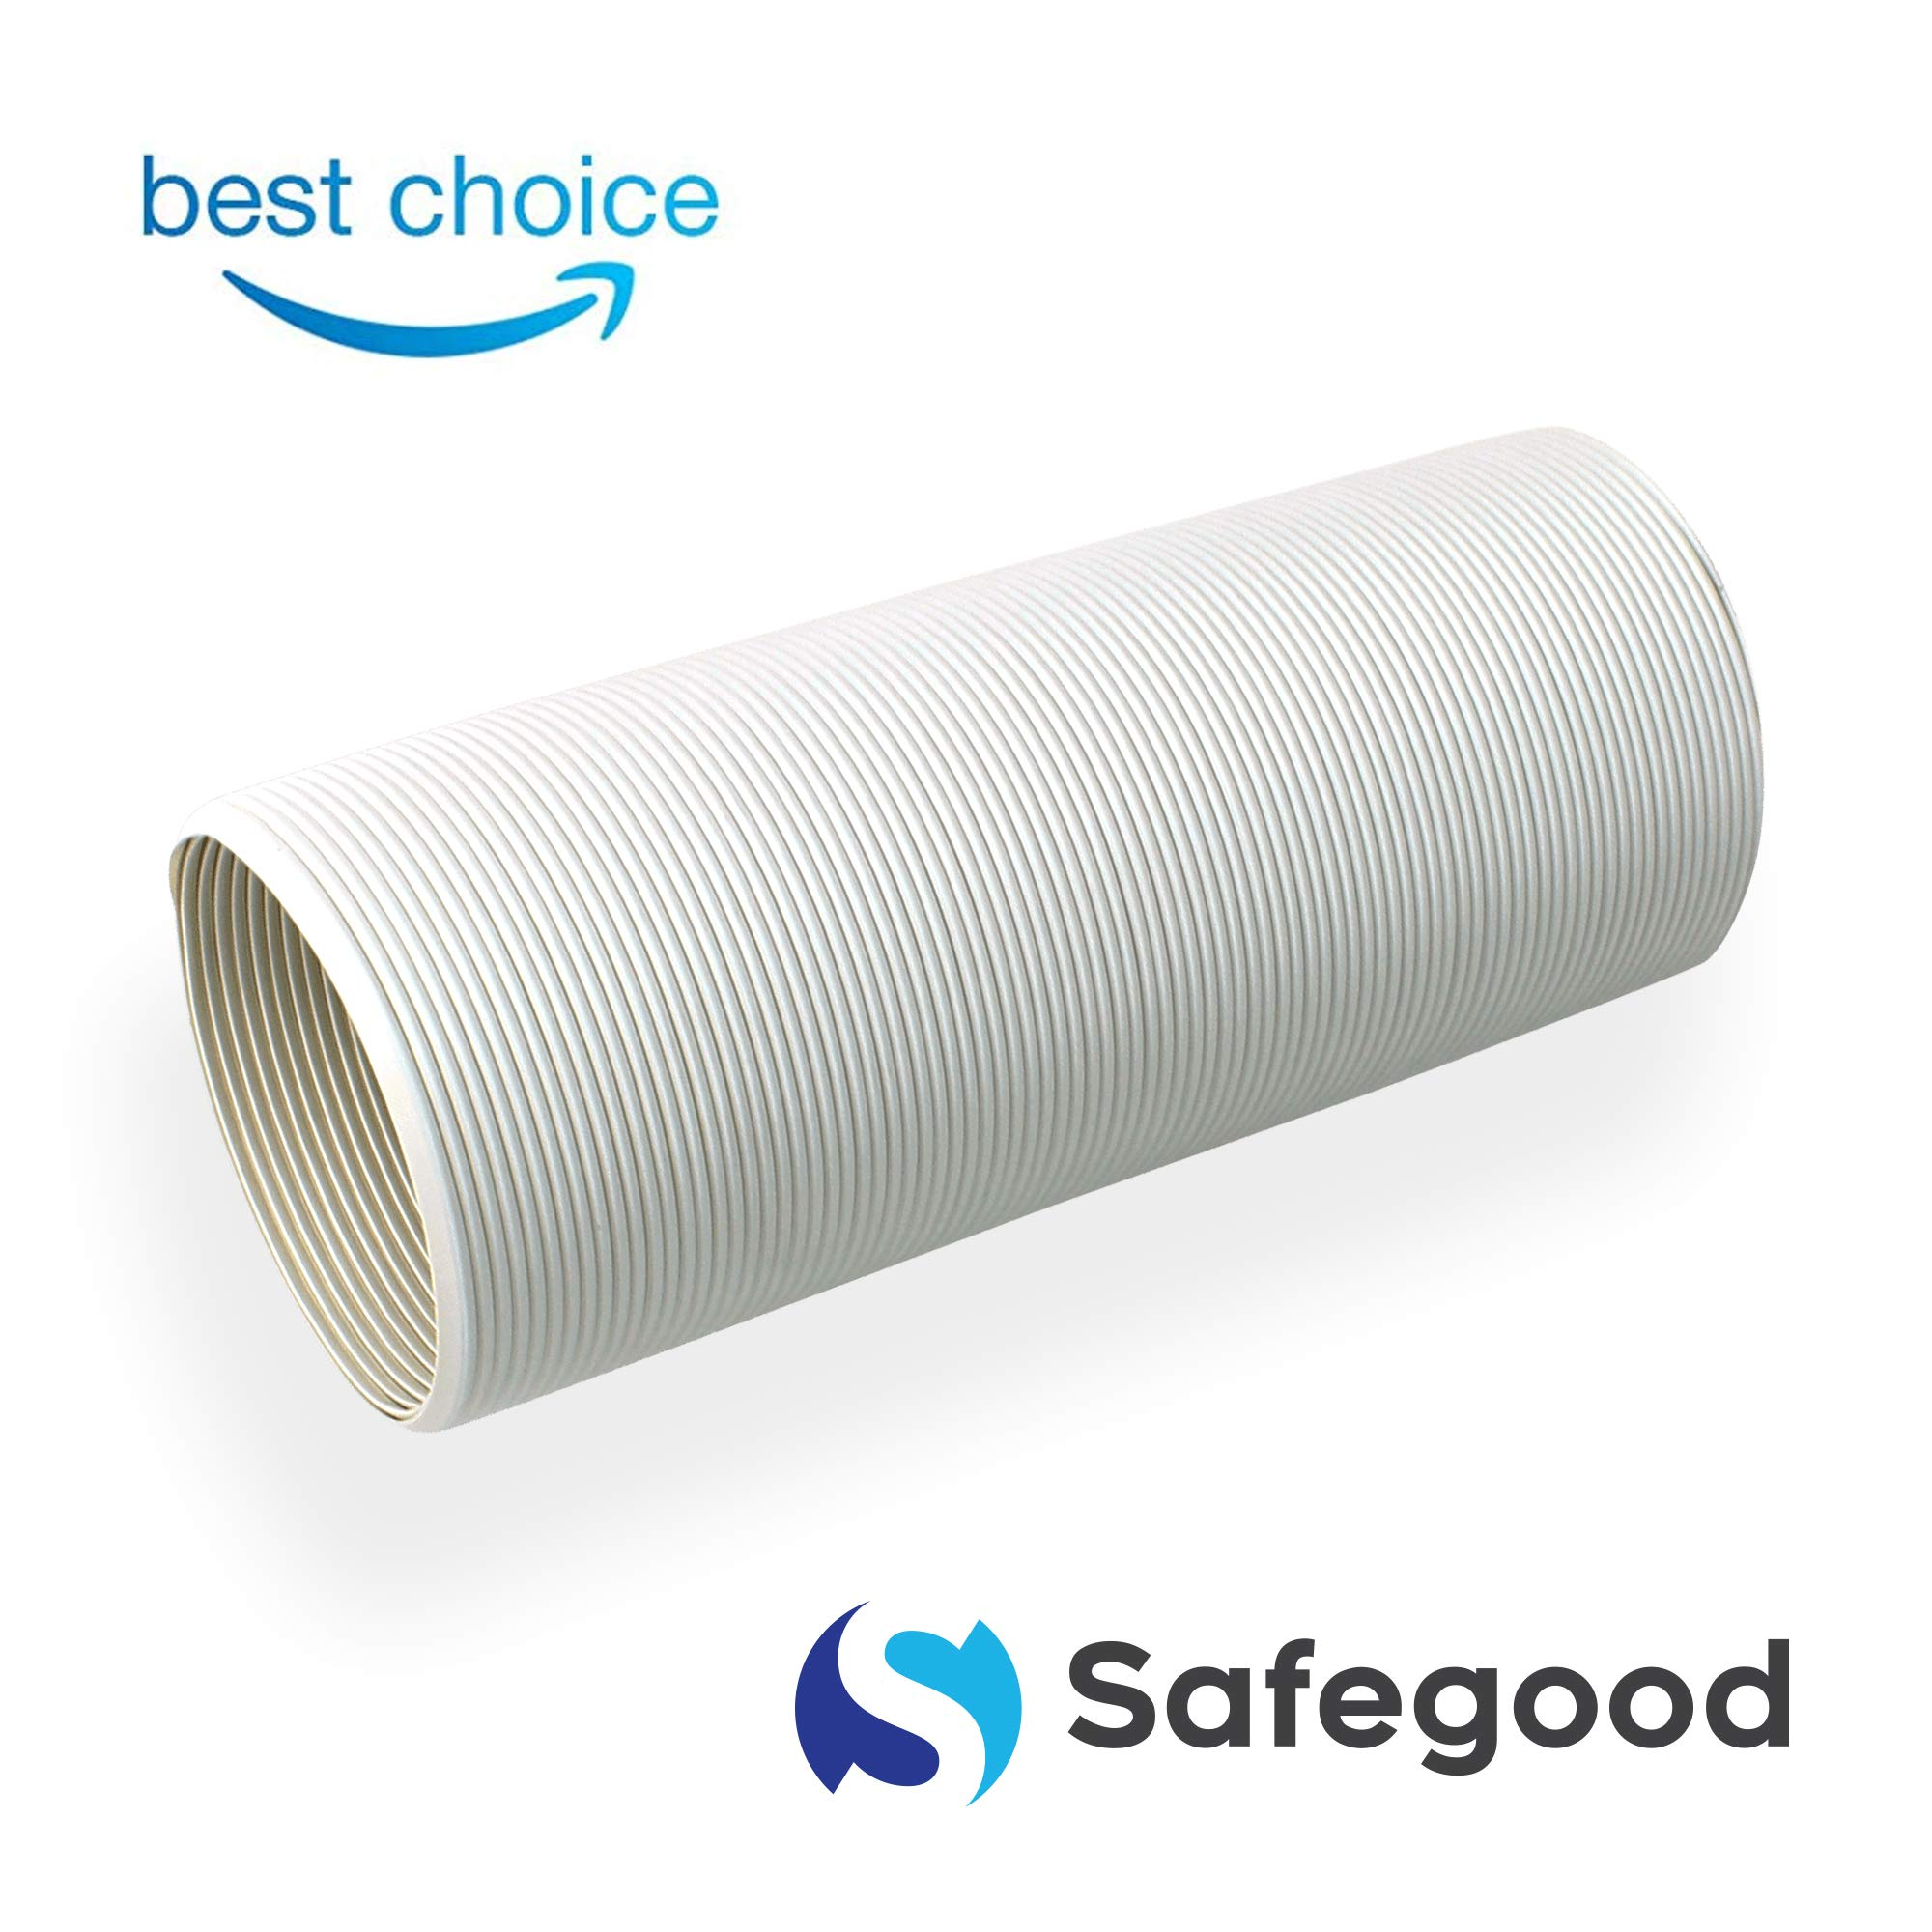 Safegood Air Conditioner Exhaust Hose Premium - for Portable AC Universal Counterclockwise Flexible Hose 5 Inch Diameter 59 Inch Vent